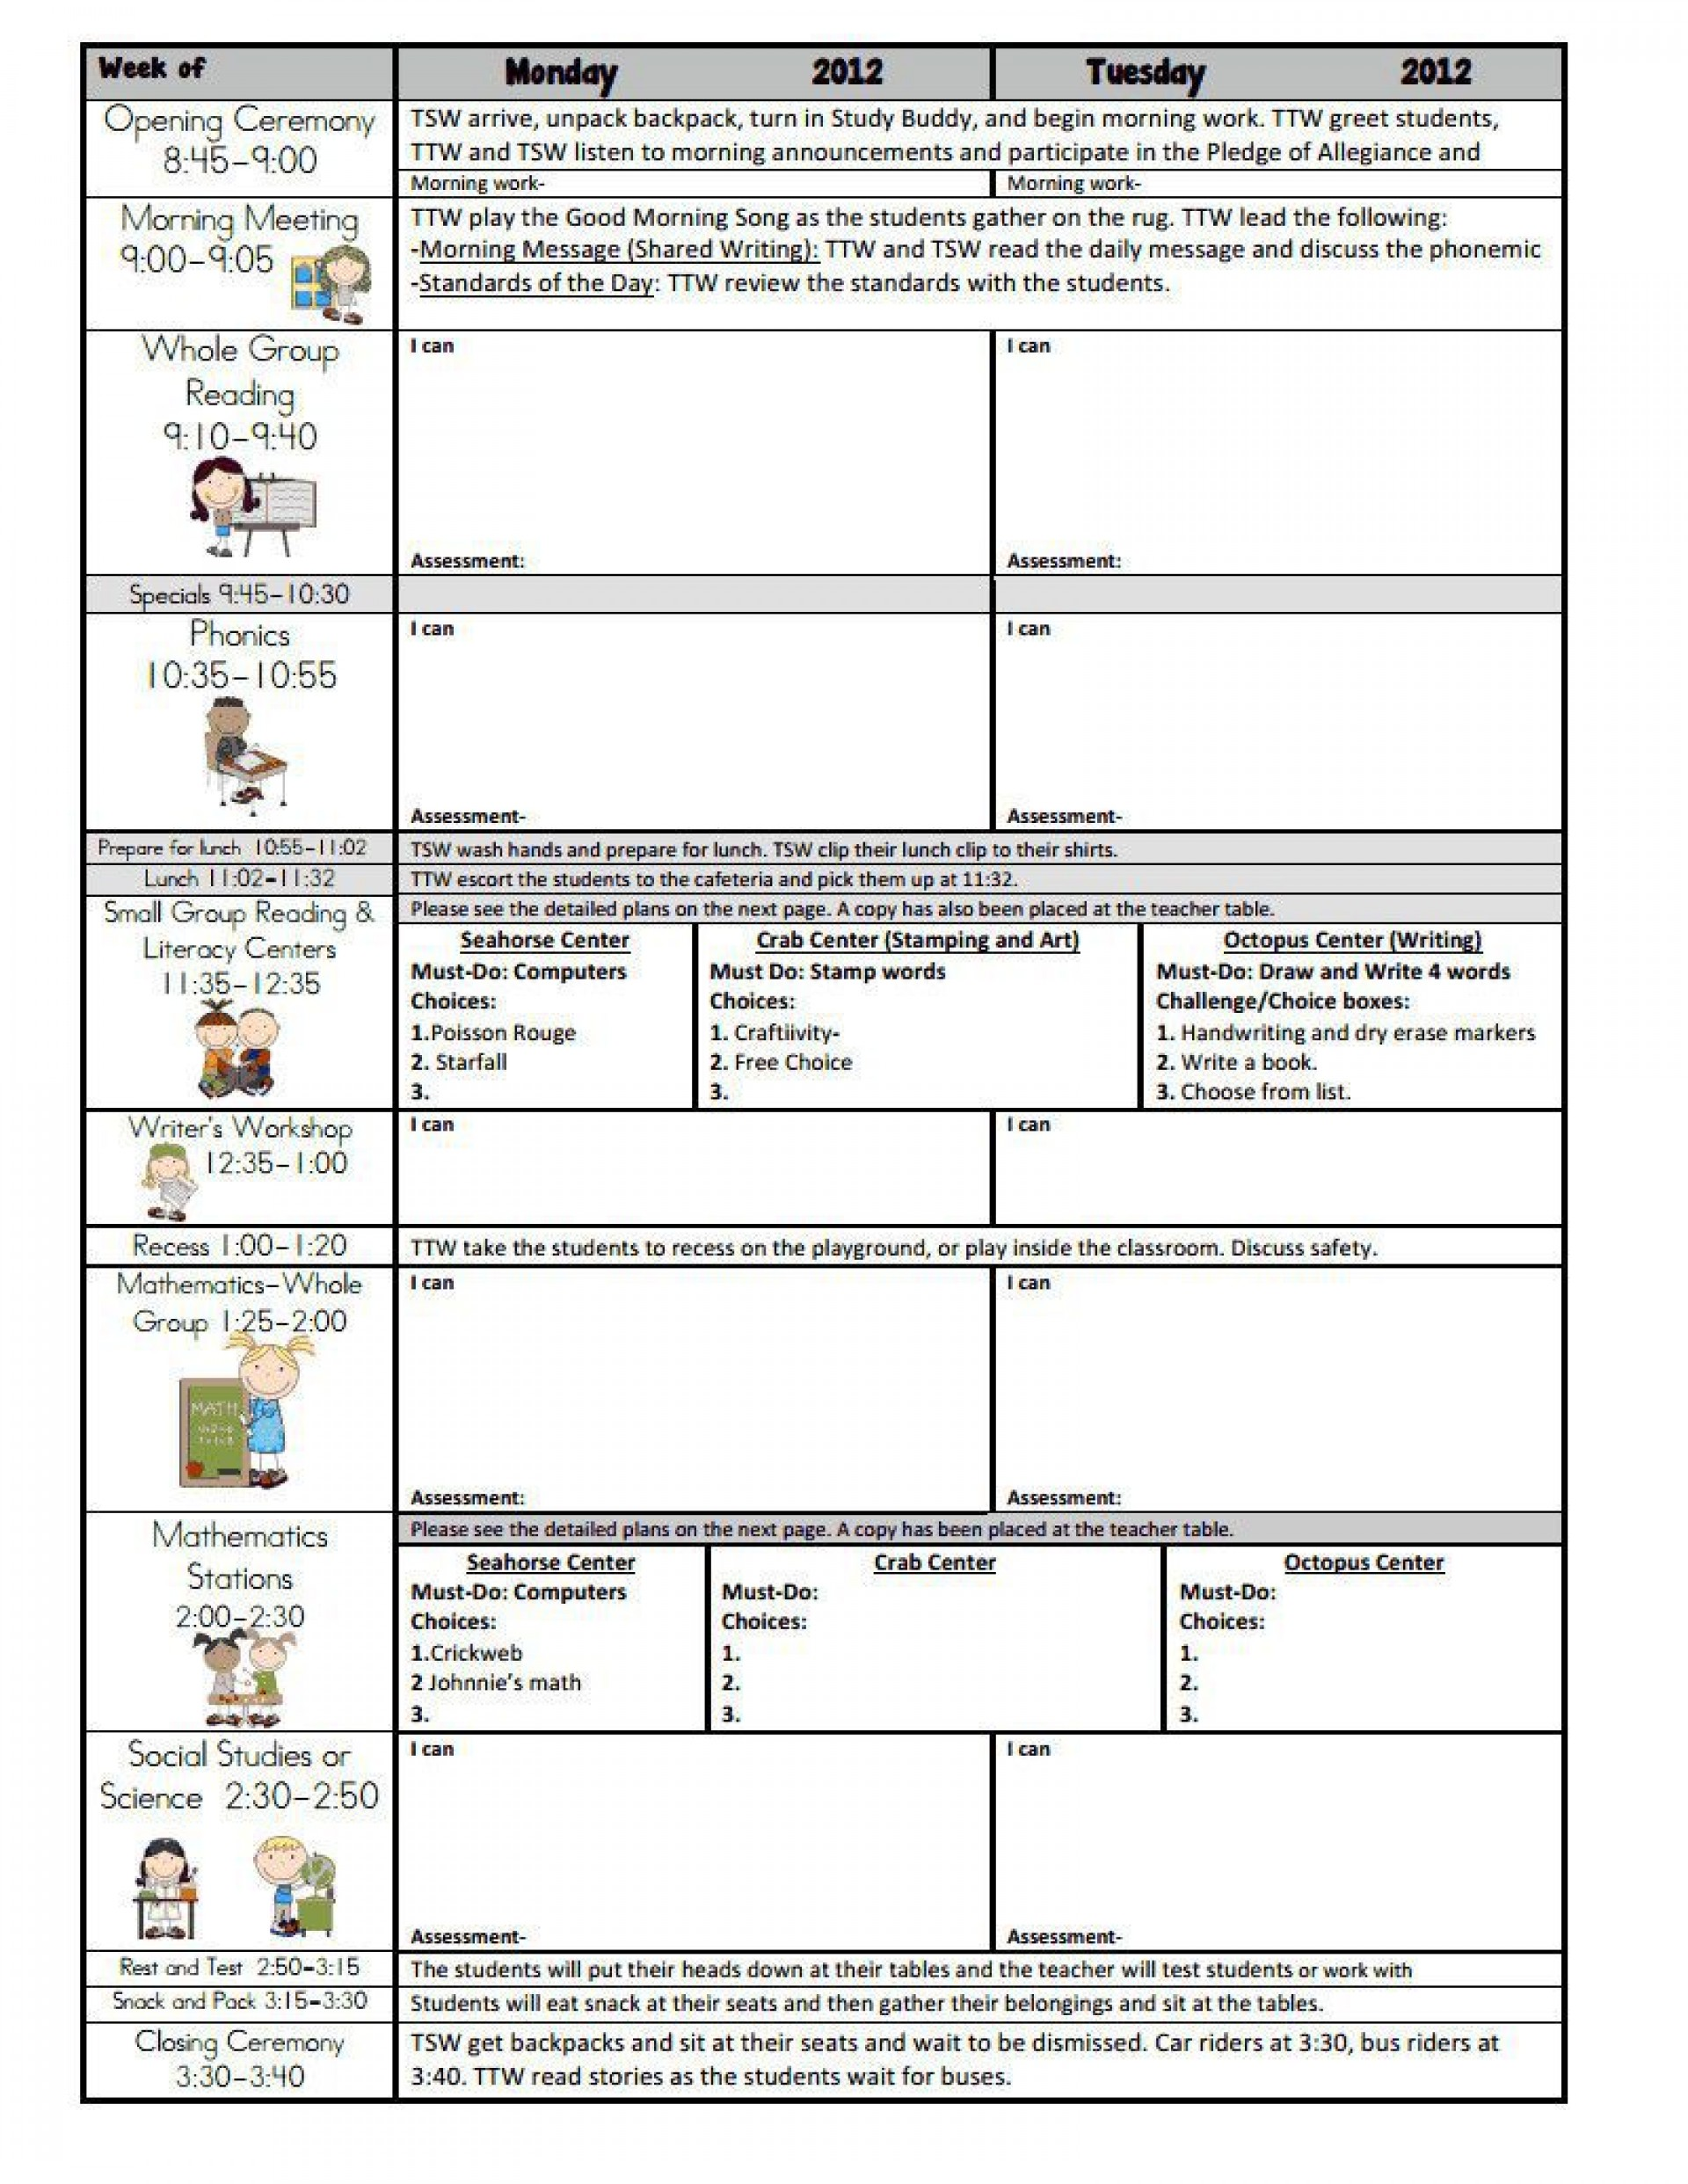 004 Archaicawful Editable Lesson Plan Template Middle School Idea 1920